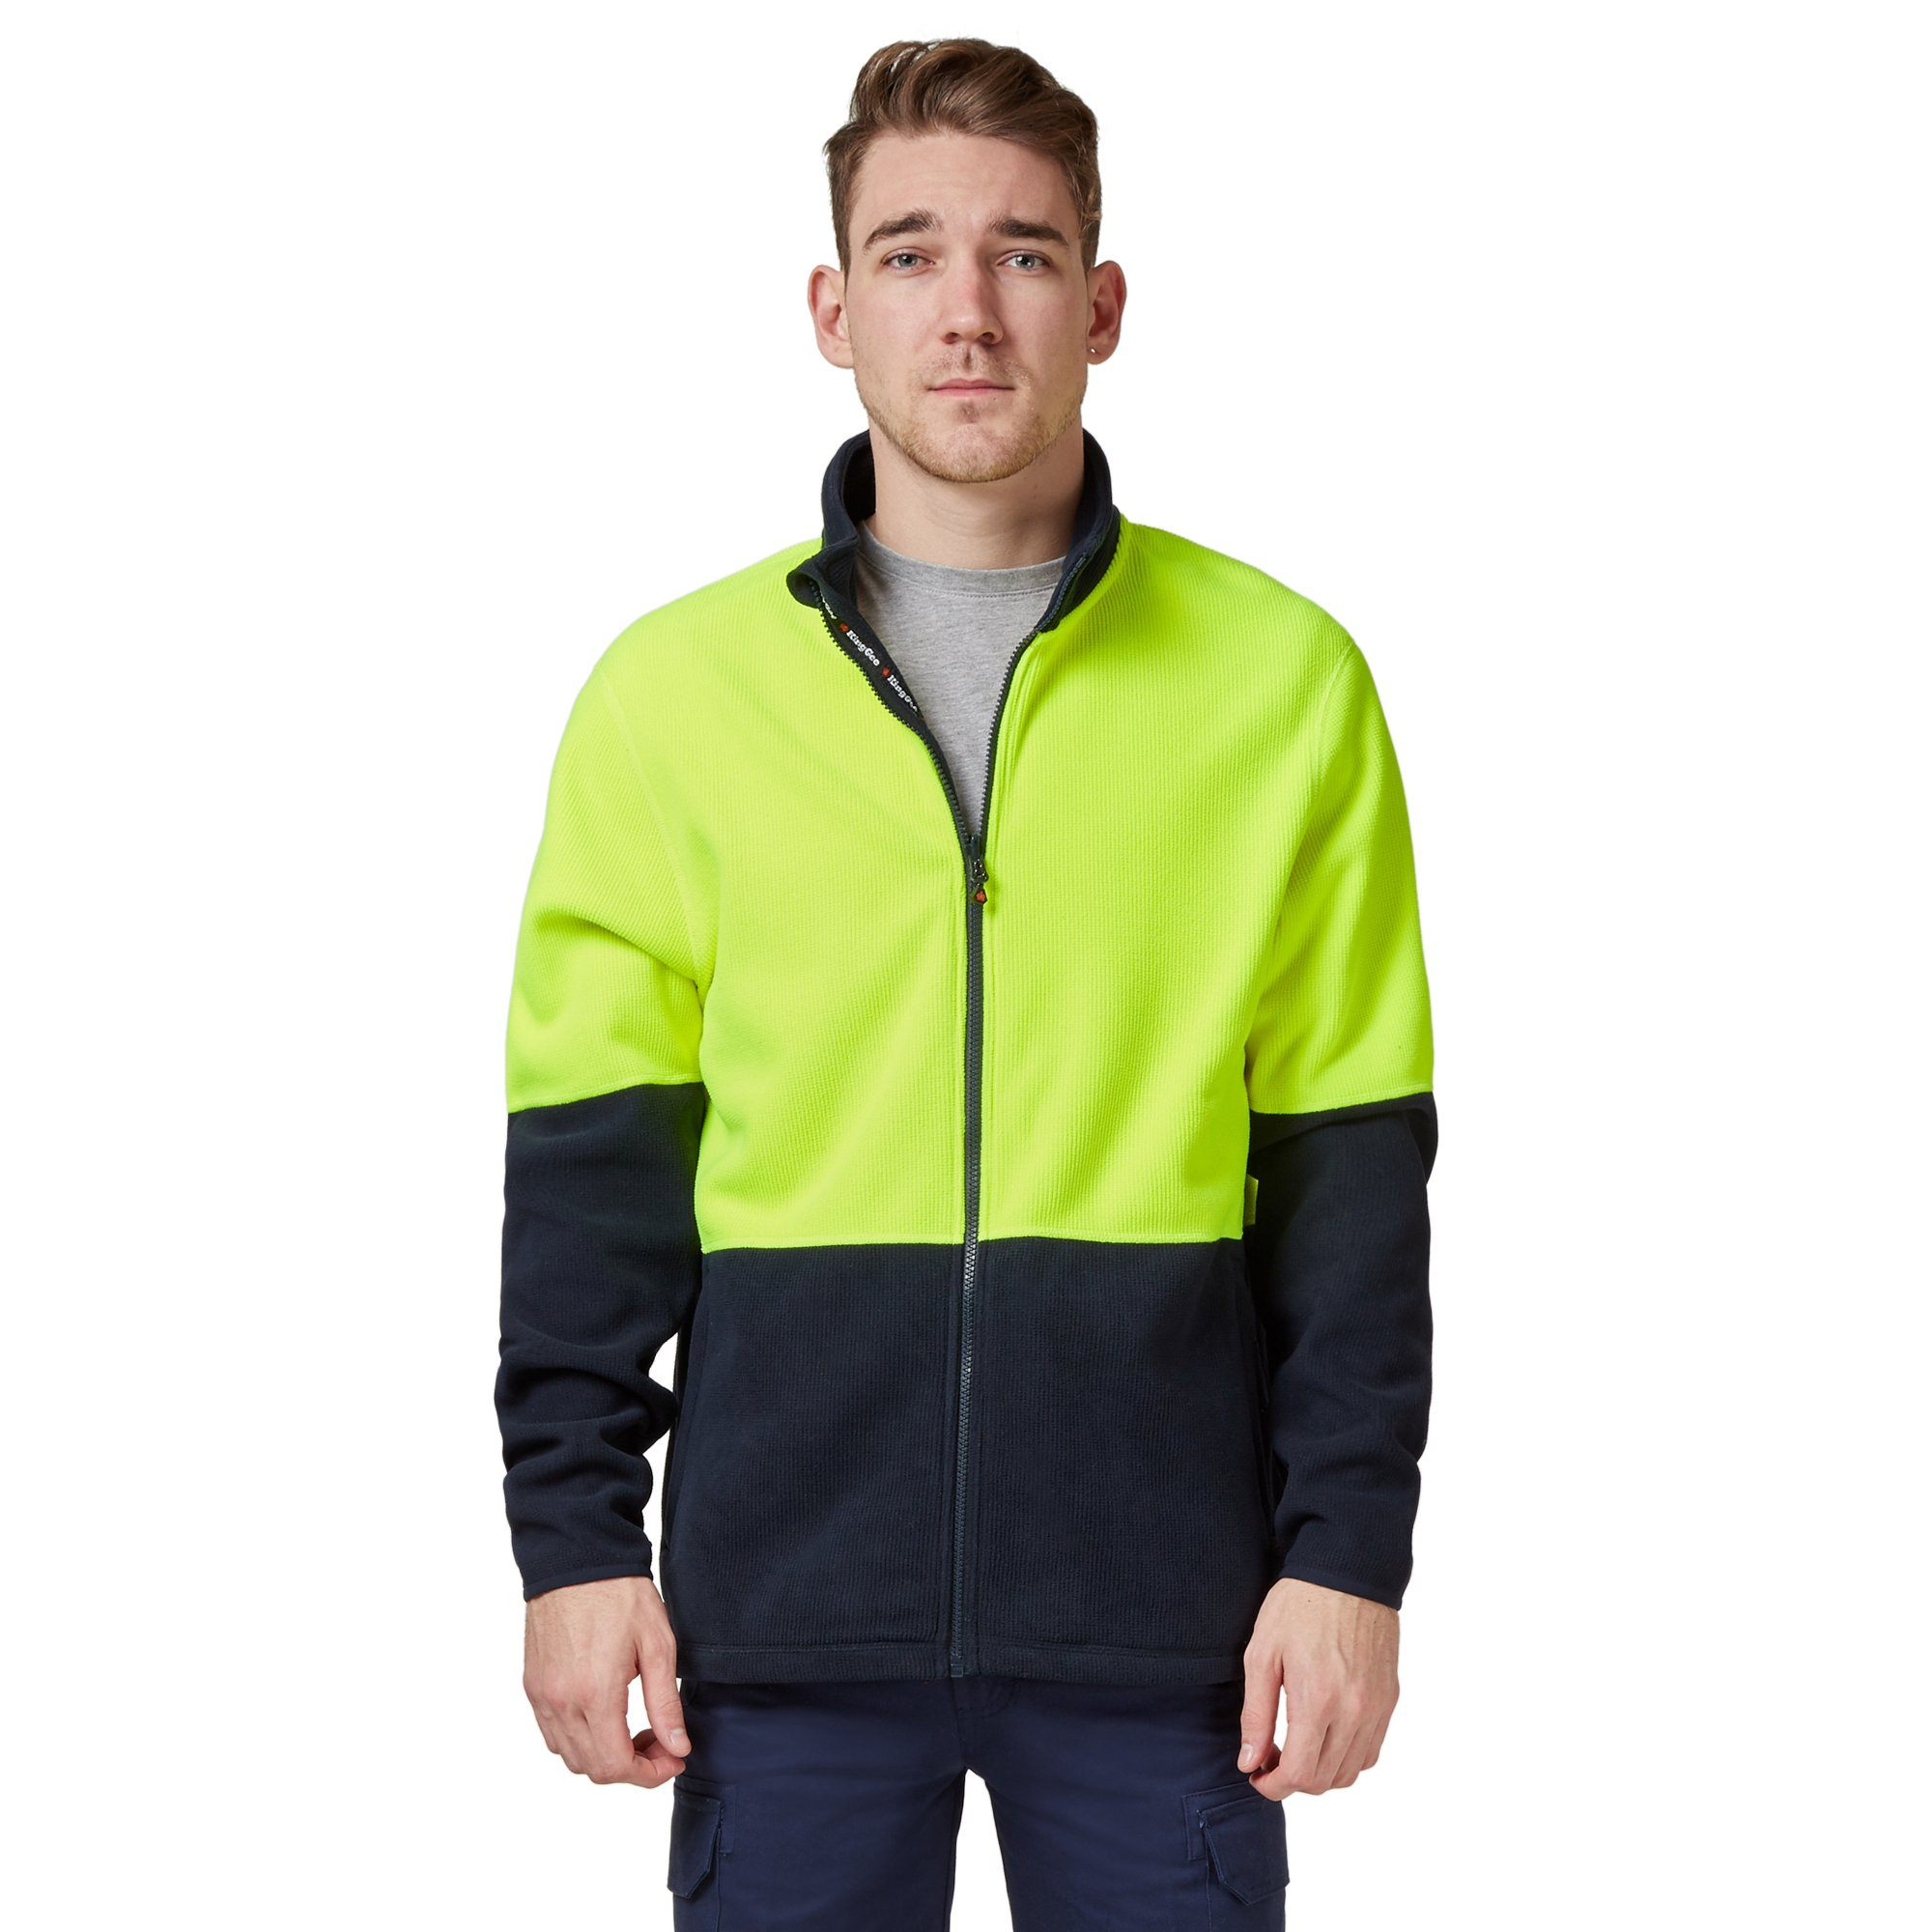 King Gee Full Zip Spliced Hi Vis Fleece - Yellow/Navy Workwear Isbister & Co Wholesale